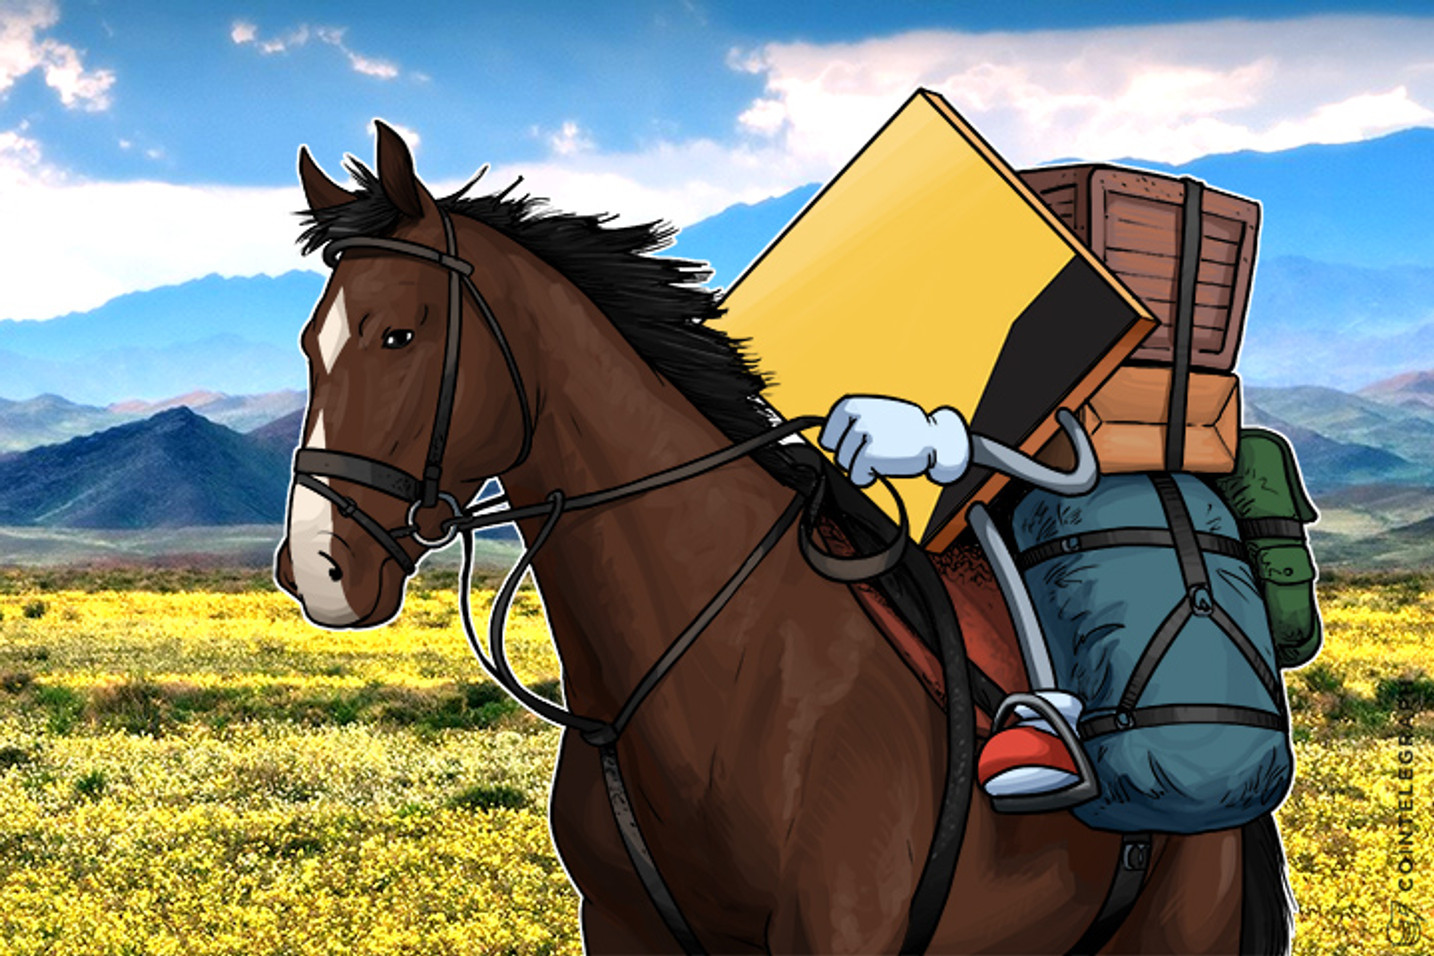 Wells Fargo and Australian Bank Begin Sending Physical Products Via Blockchain